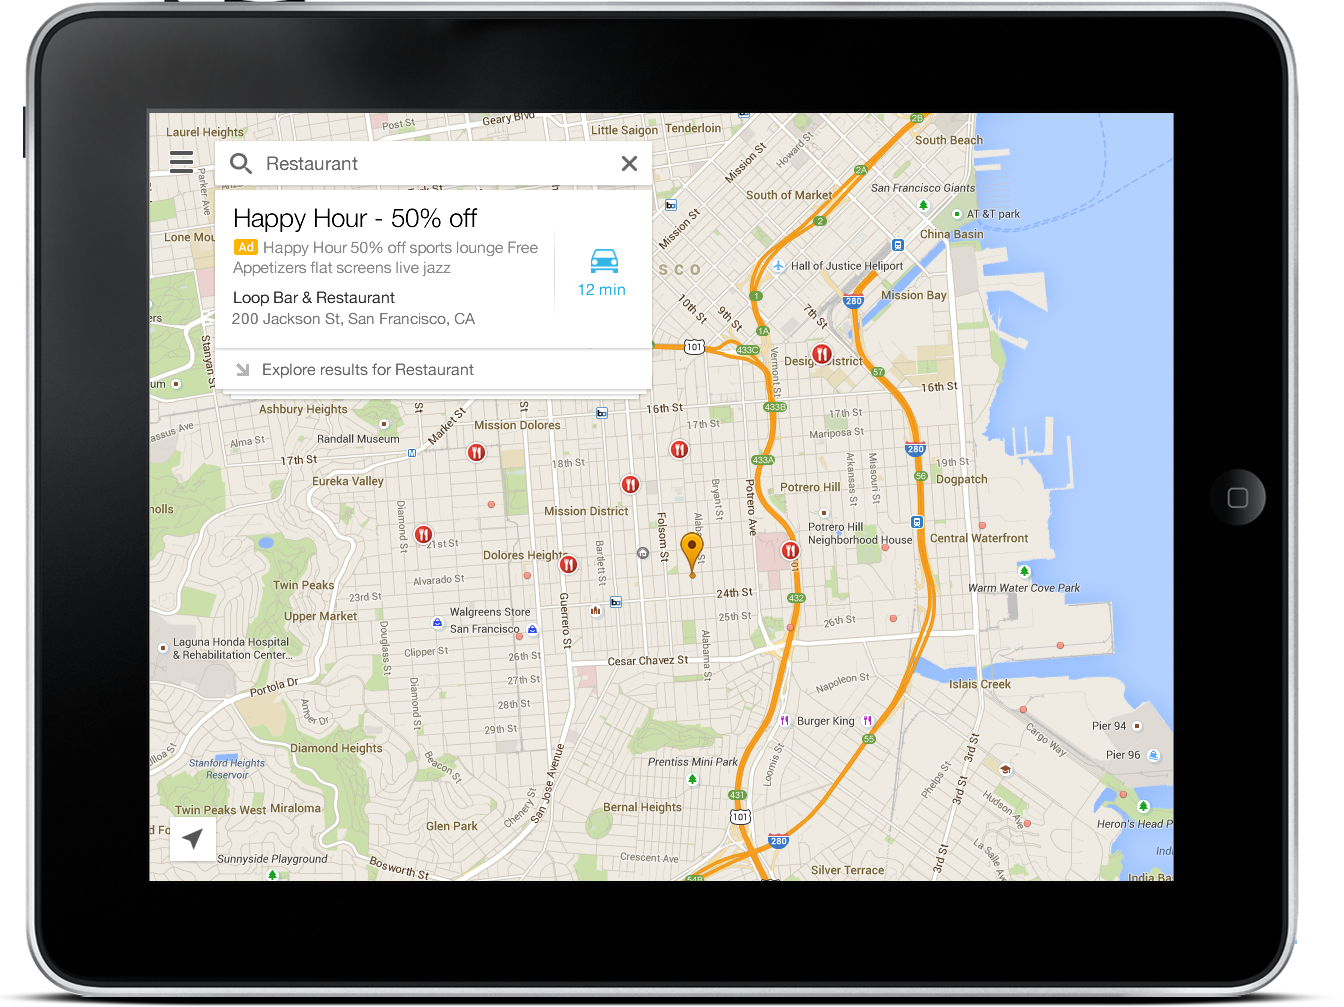 Google Maps for Mobile on tablet devices